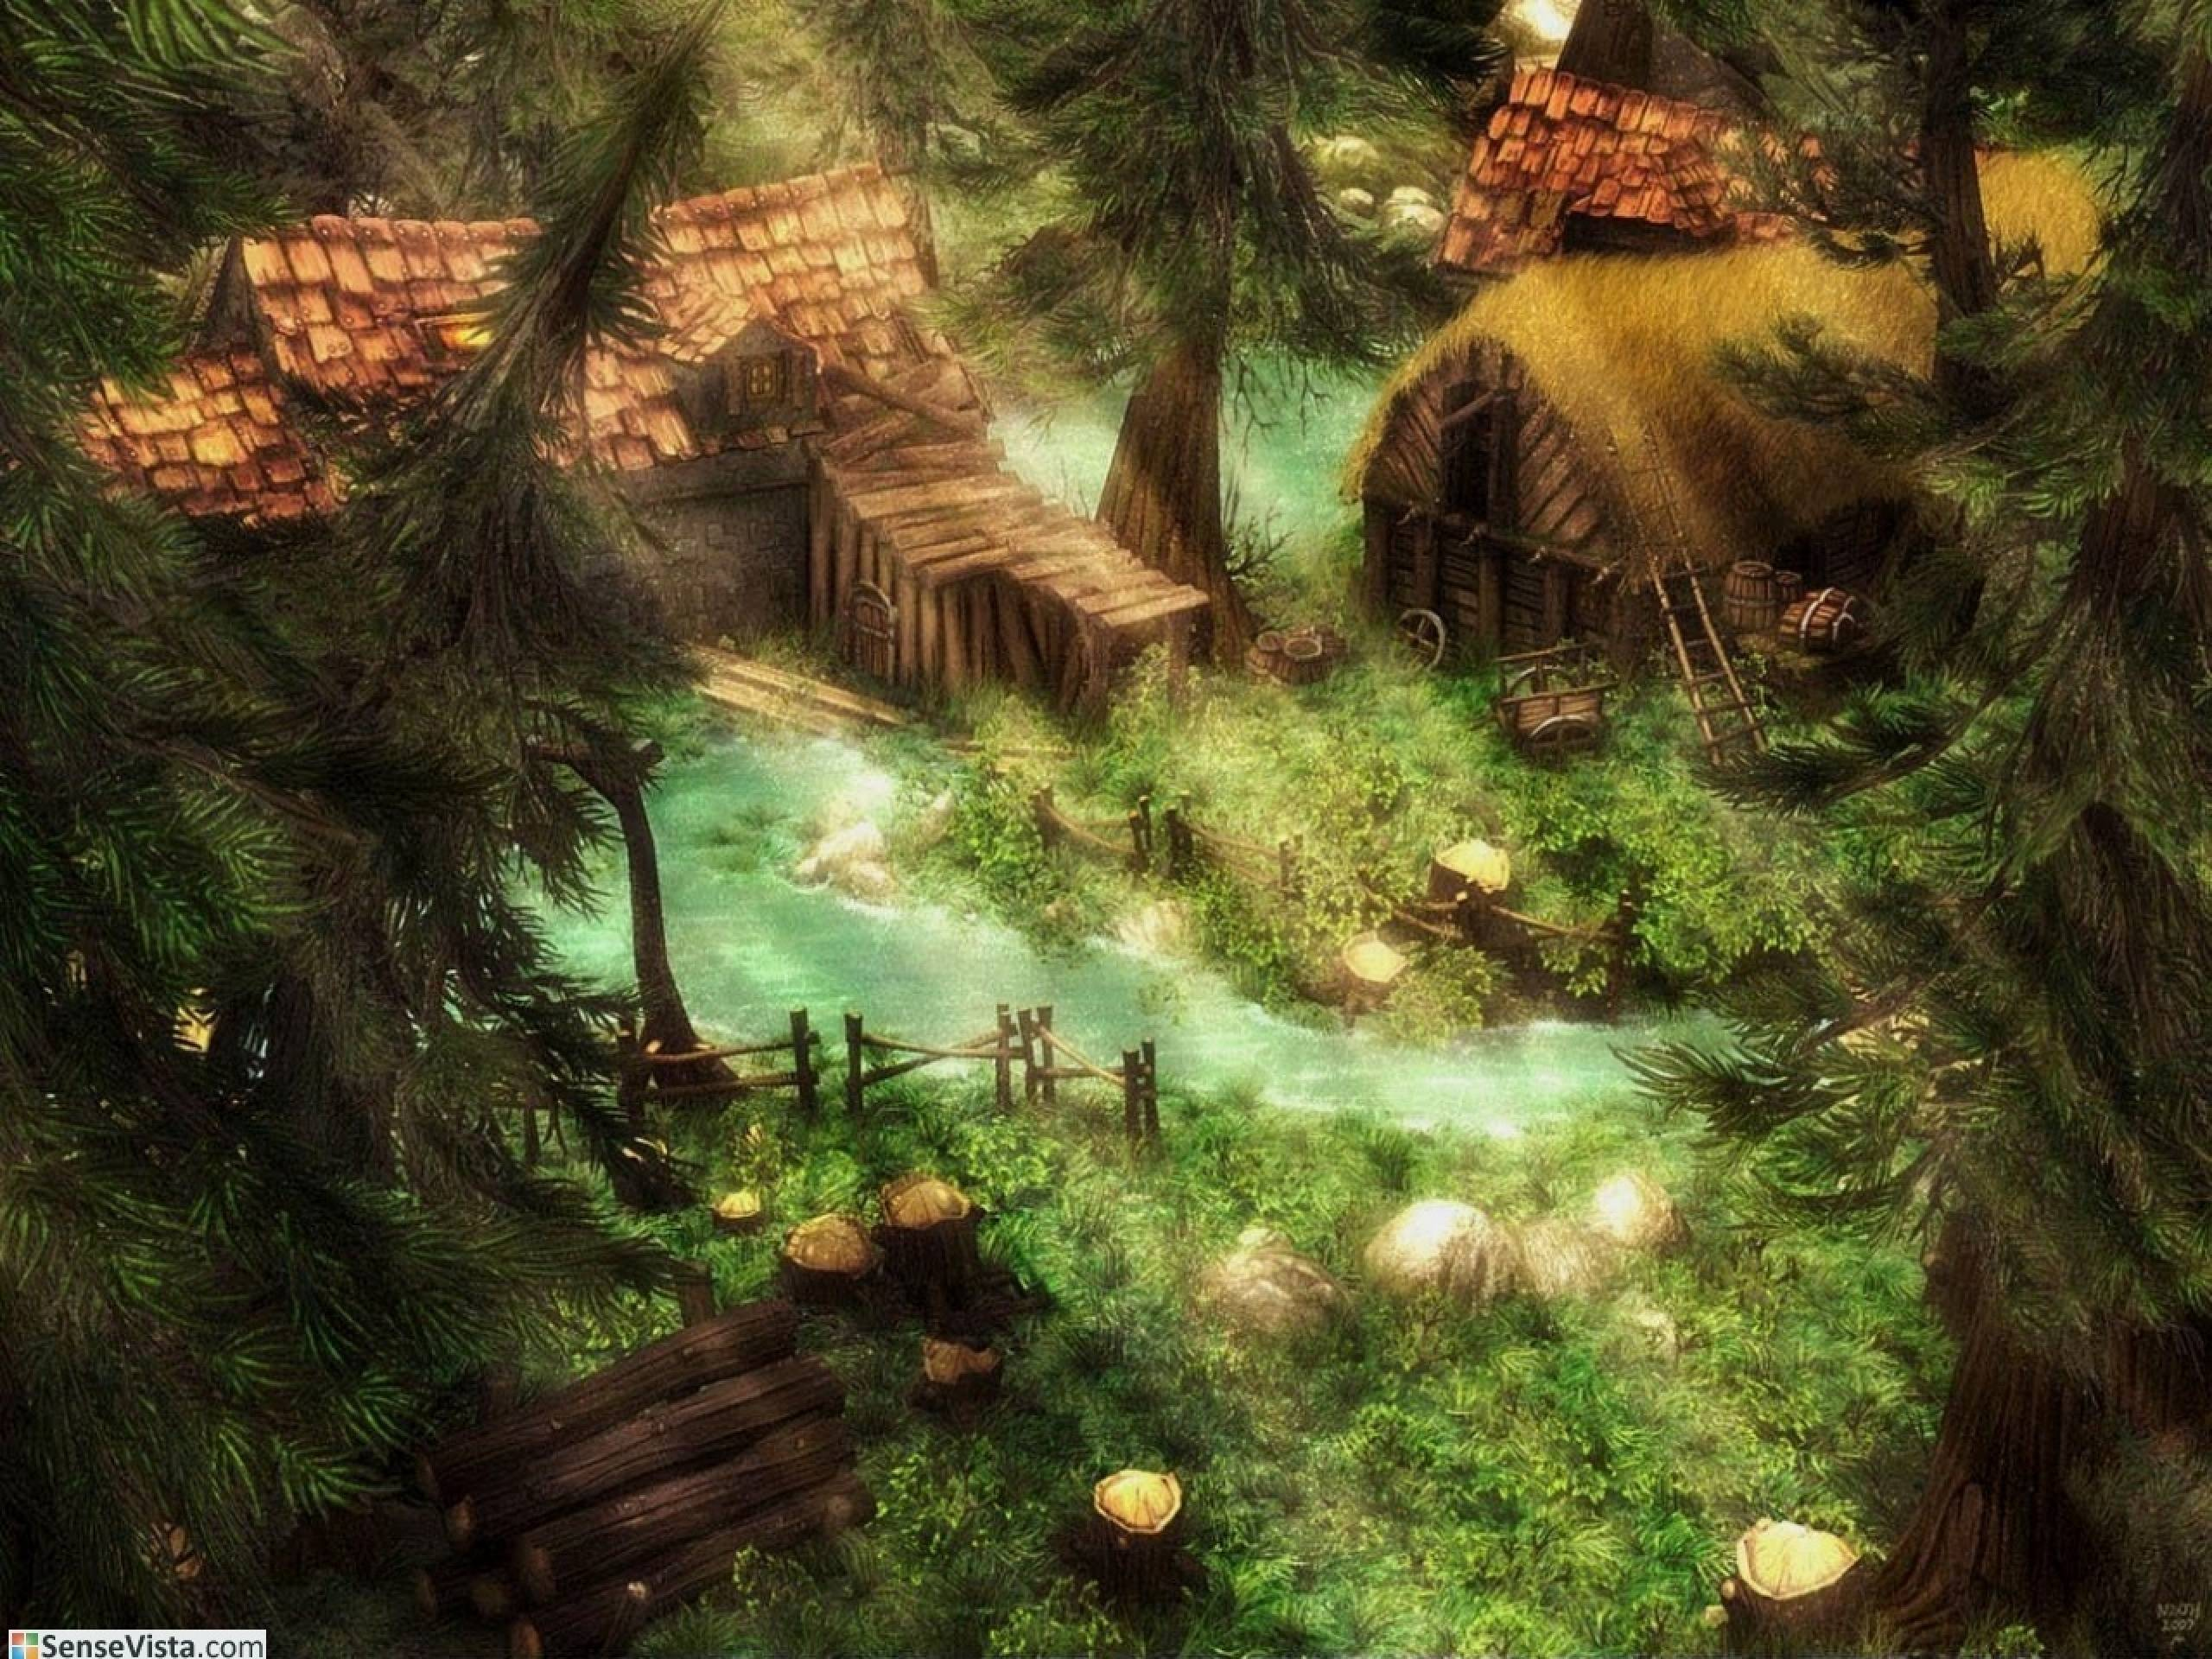 Fantasy nature wallpaper - photo#4